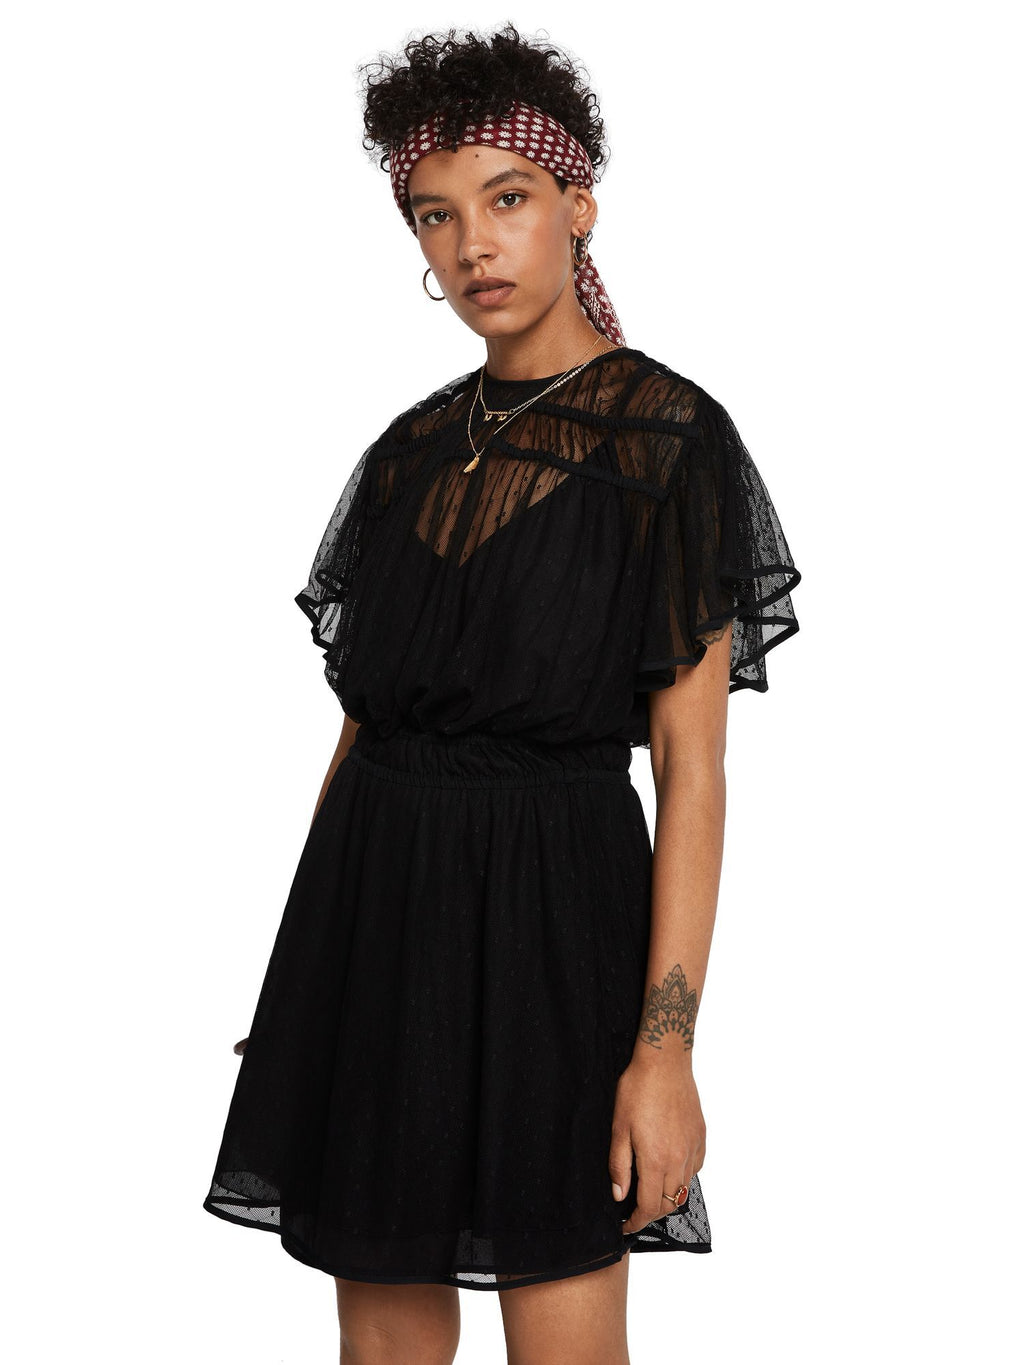 Buy Mesh Polka Dot Party Dress from SCOTCH AND SODA at PAYA boutique